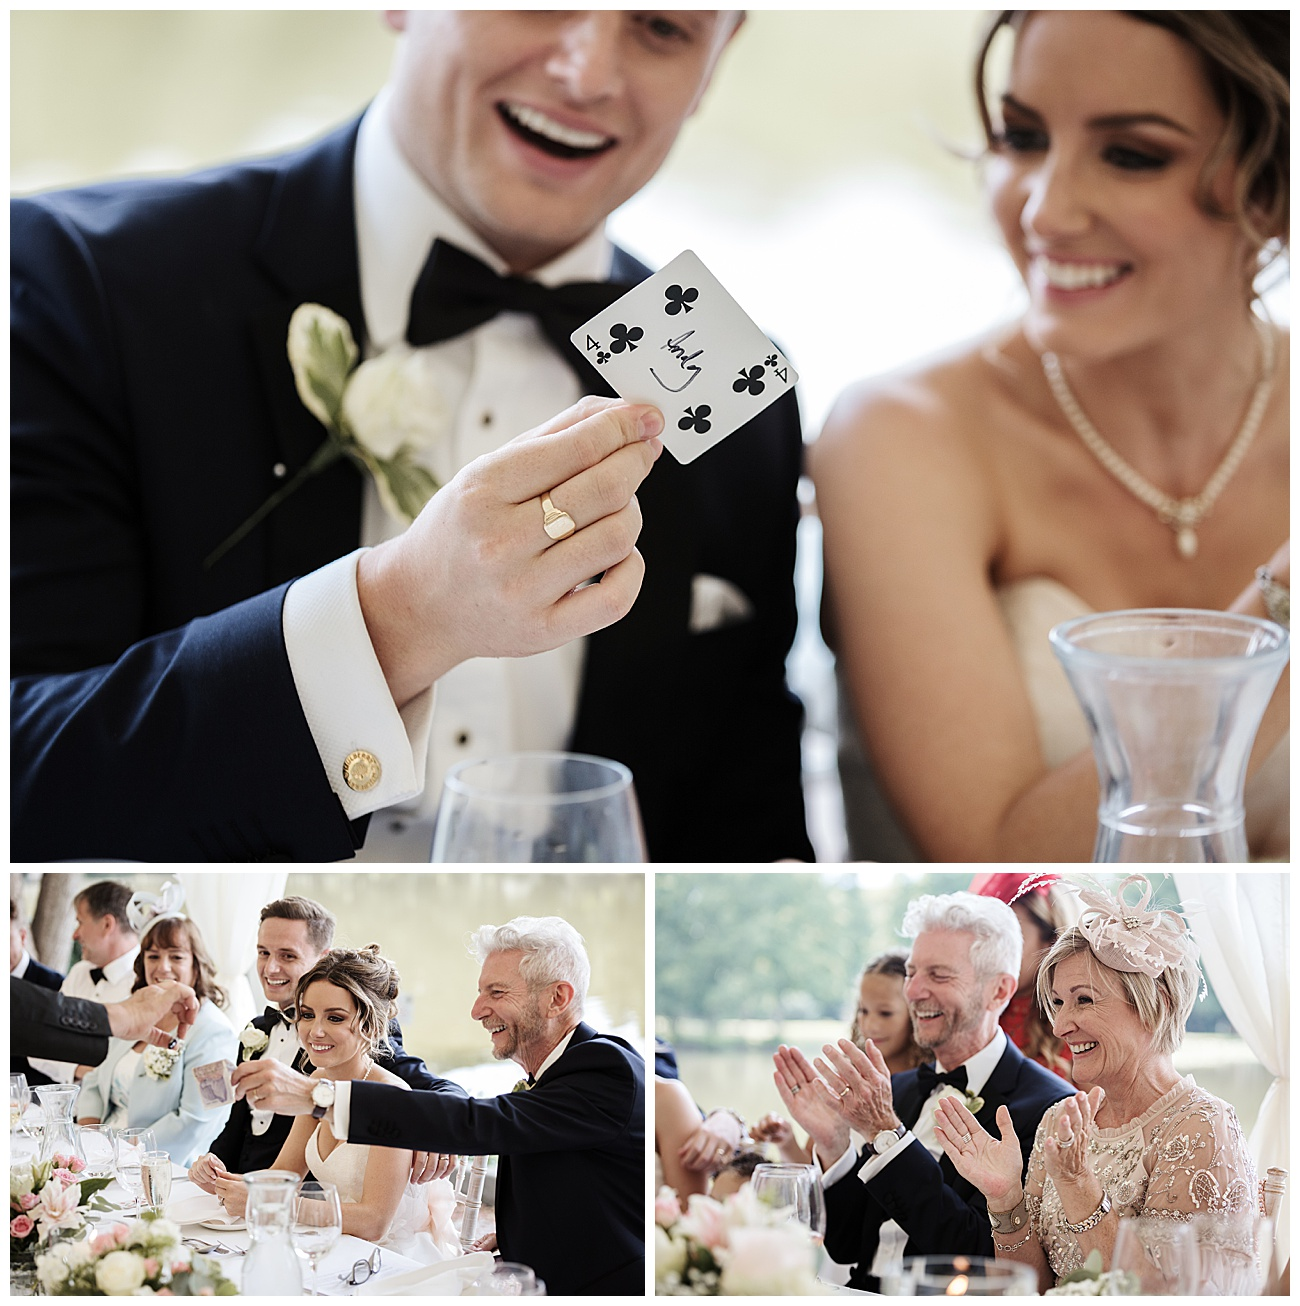 Magician shows his tricks to the bride and groom